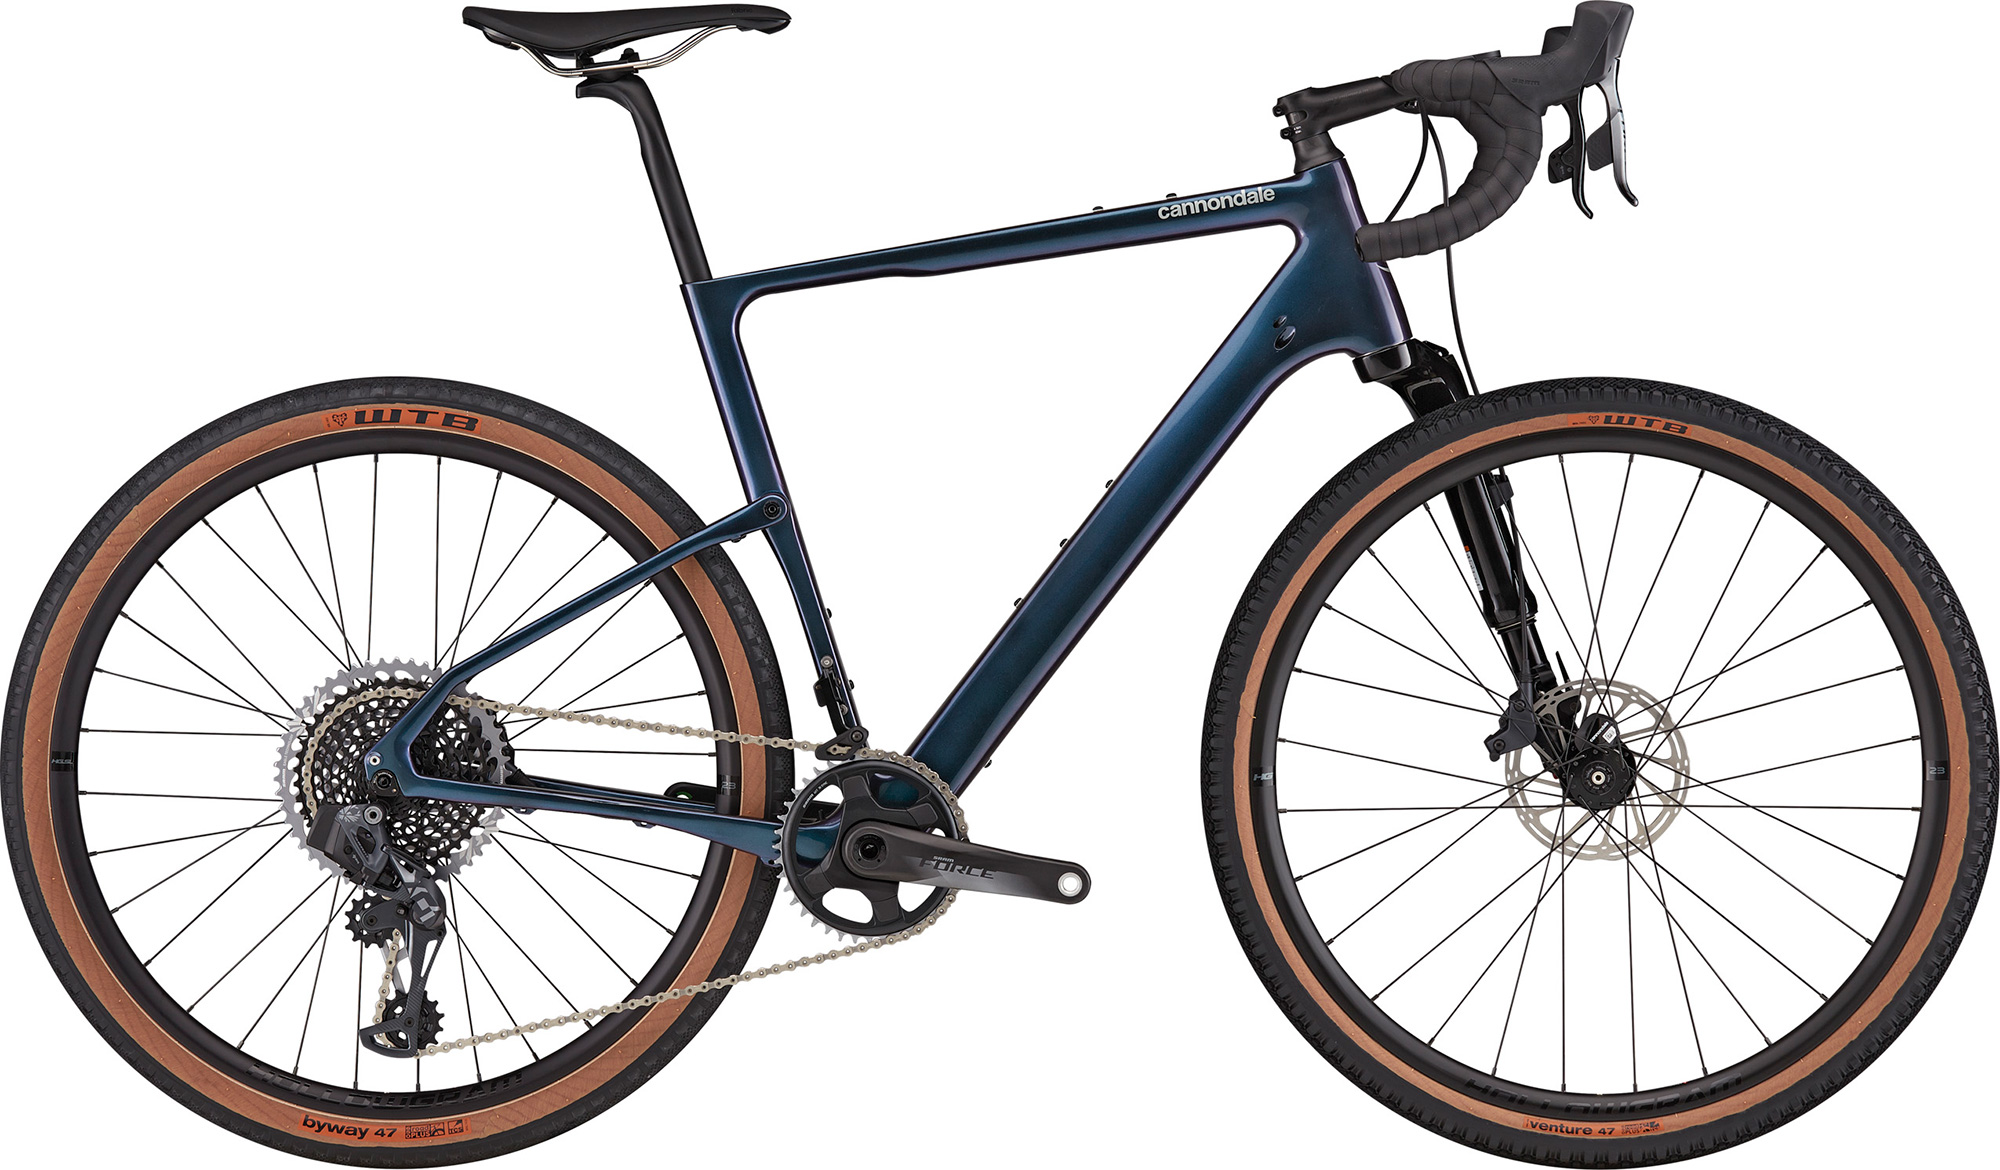 2021 Cannondale Topstone 650 Crb Lefty 1 : Chameleon : Small